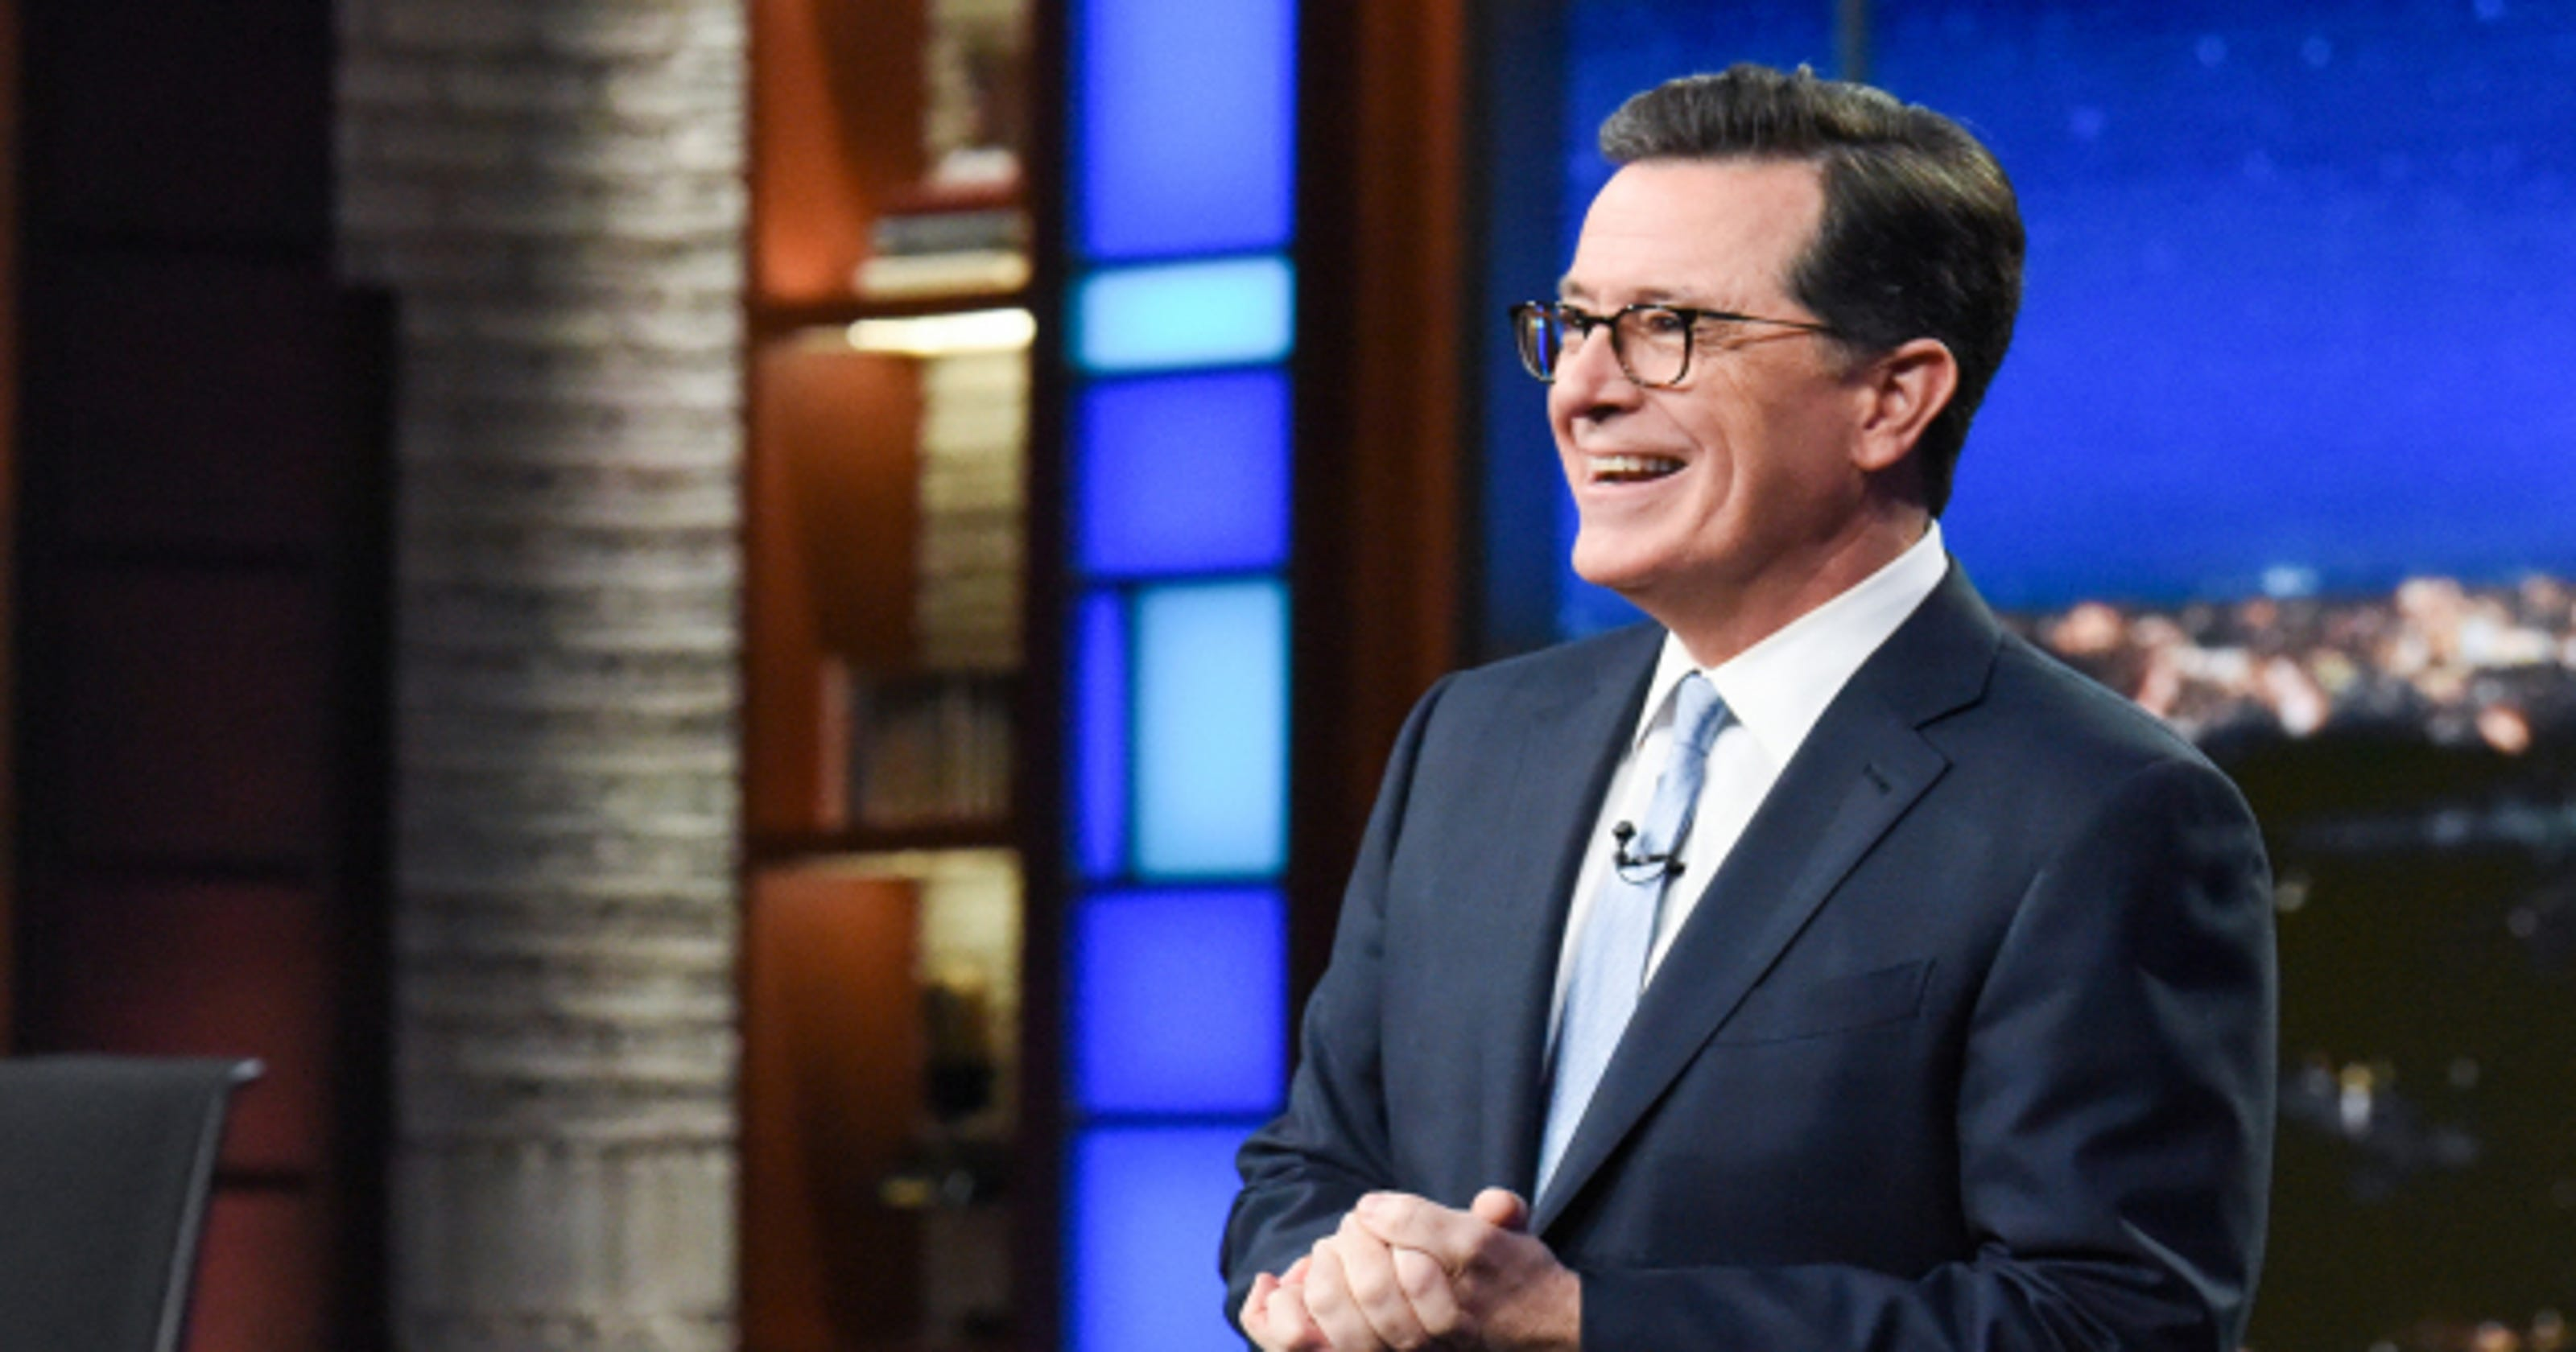 Colbert, Kimmel, and Fallon weigh in on latest in Trump-Mueller news